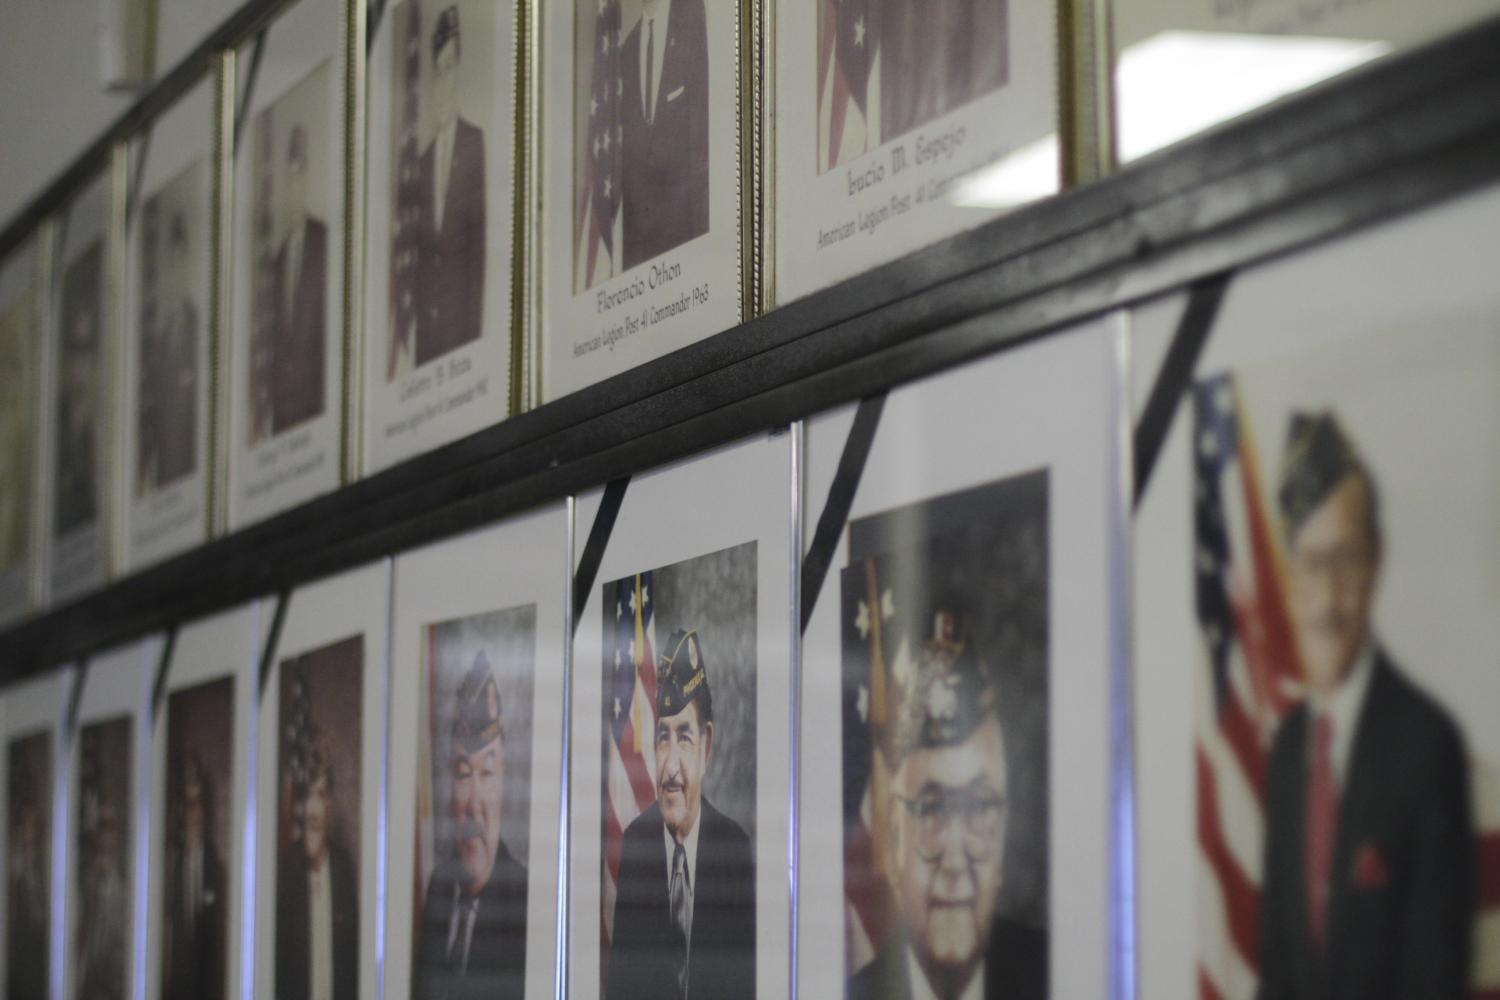 black bands on former Post commanders pictures indicate they have died